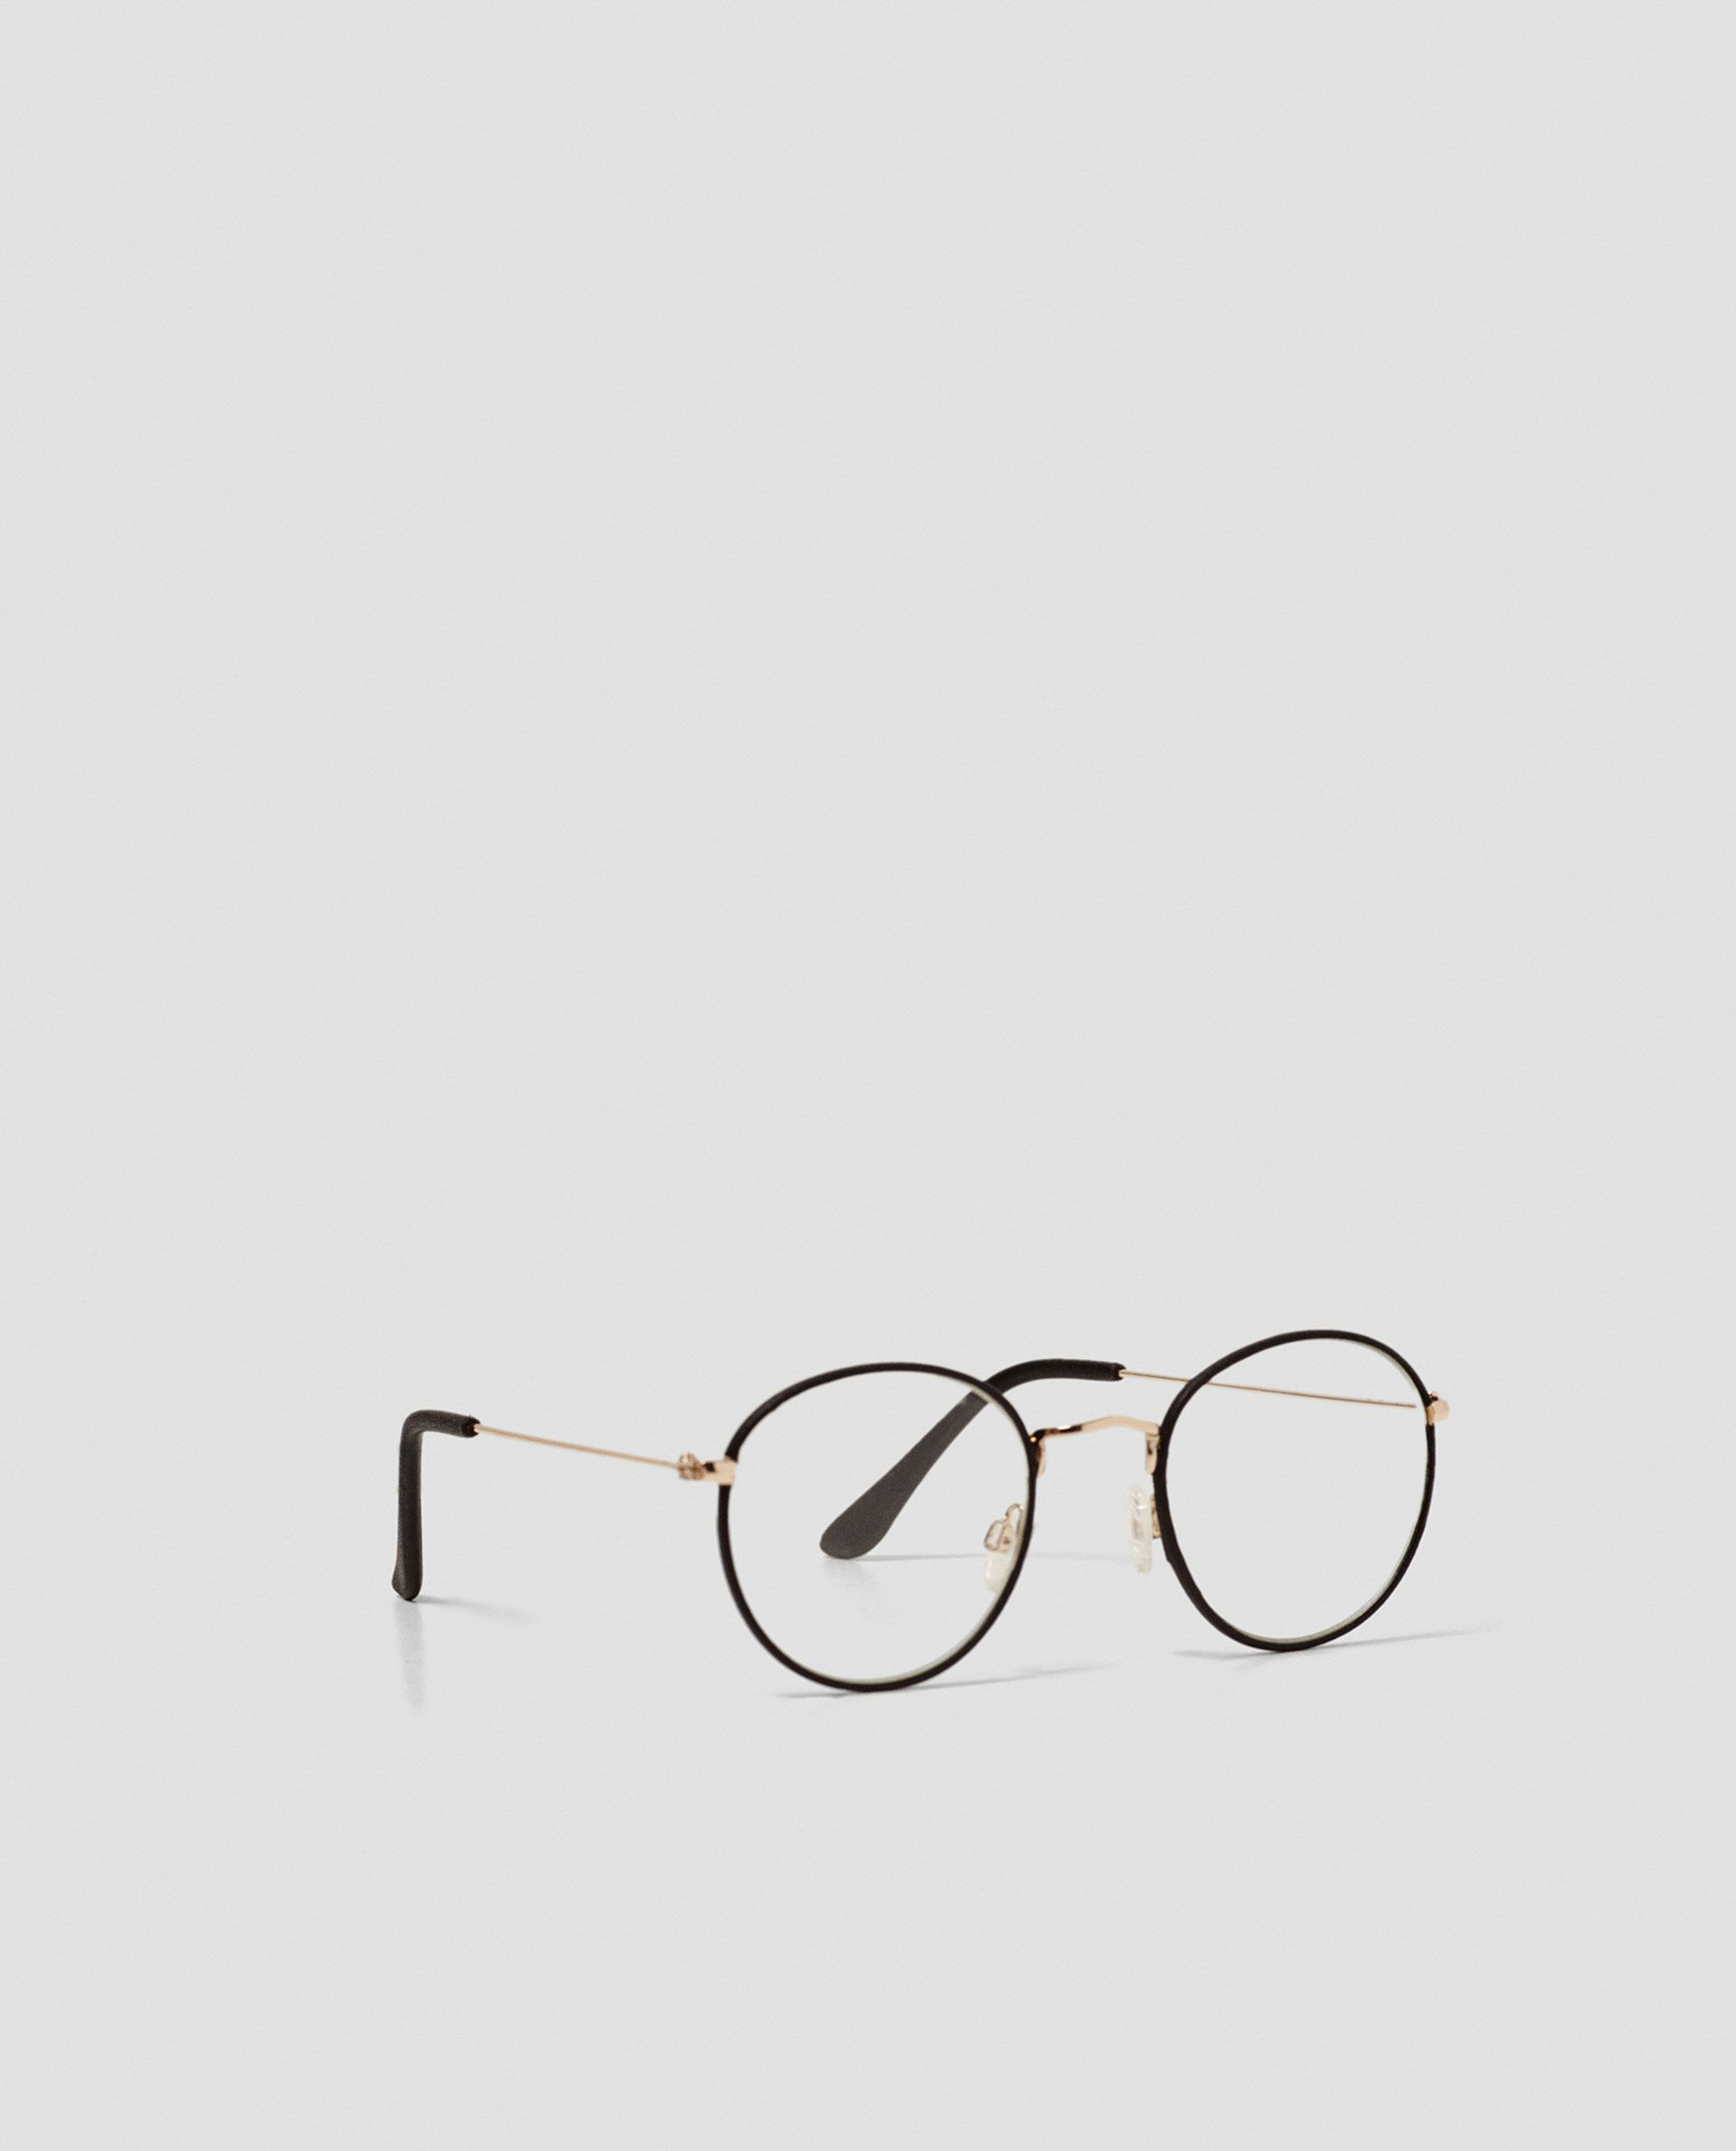 0d77de34b0 ZARA - WOMAN - GLASSES WITH LEATHER-LINED FRAME